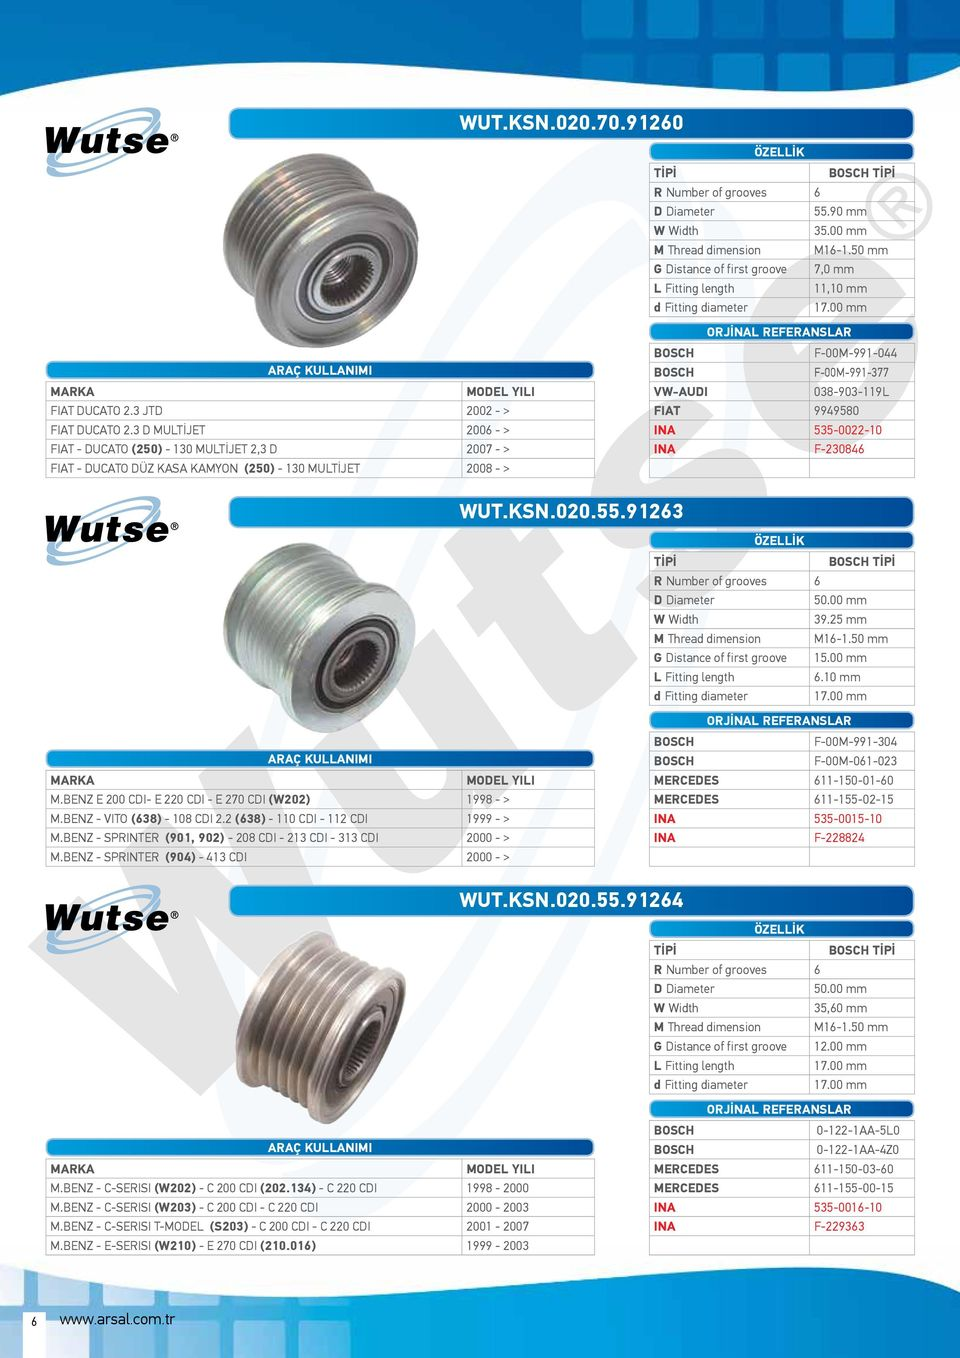 535-0022-10 INA F-230846 WUT.KSN.020.55.91263 50.00 mm 39.25 mm G Distance of first groove 15.00 mm 6.10 mm M.BENZ E 200 CDI- E 220 CDI - E 270 CDI (W202) 1998 - > M.BENZ - VITO (638) - 108 CDI 2.